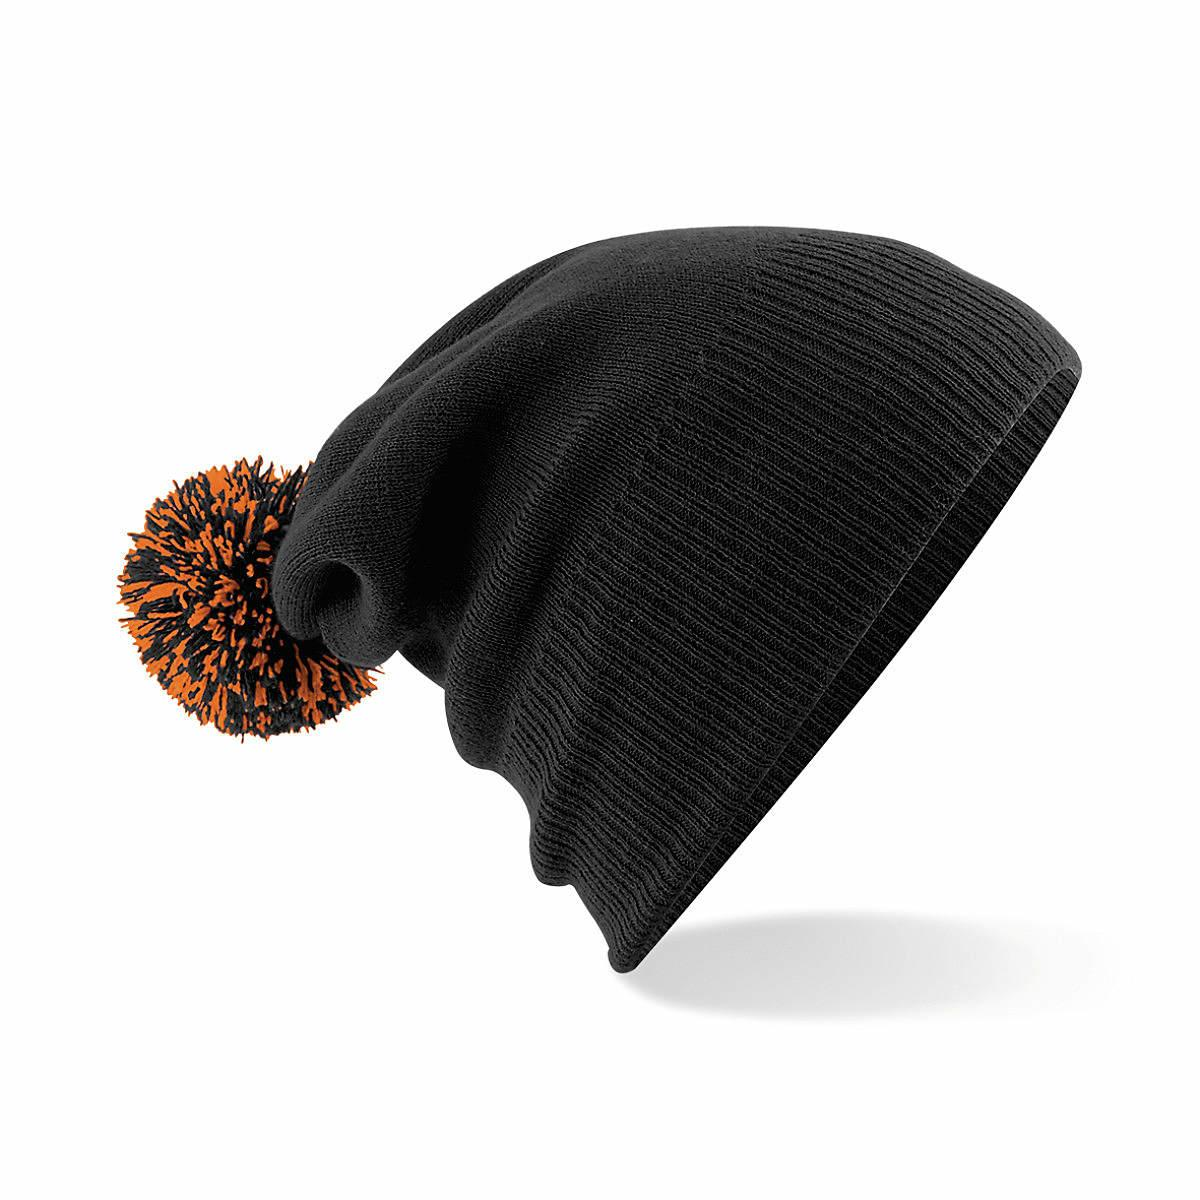 Beechfield Snowstar Beanie Hat in Black / Orange (Product Code: B450)